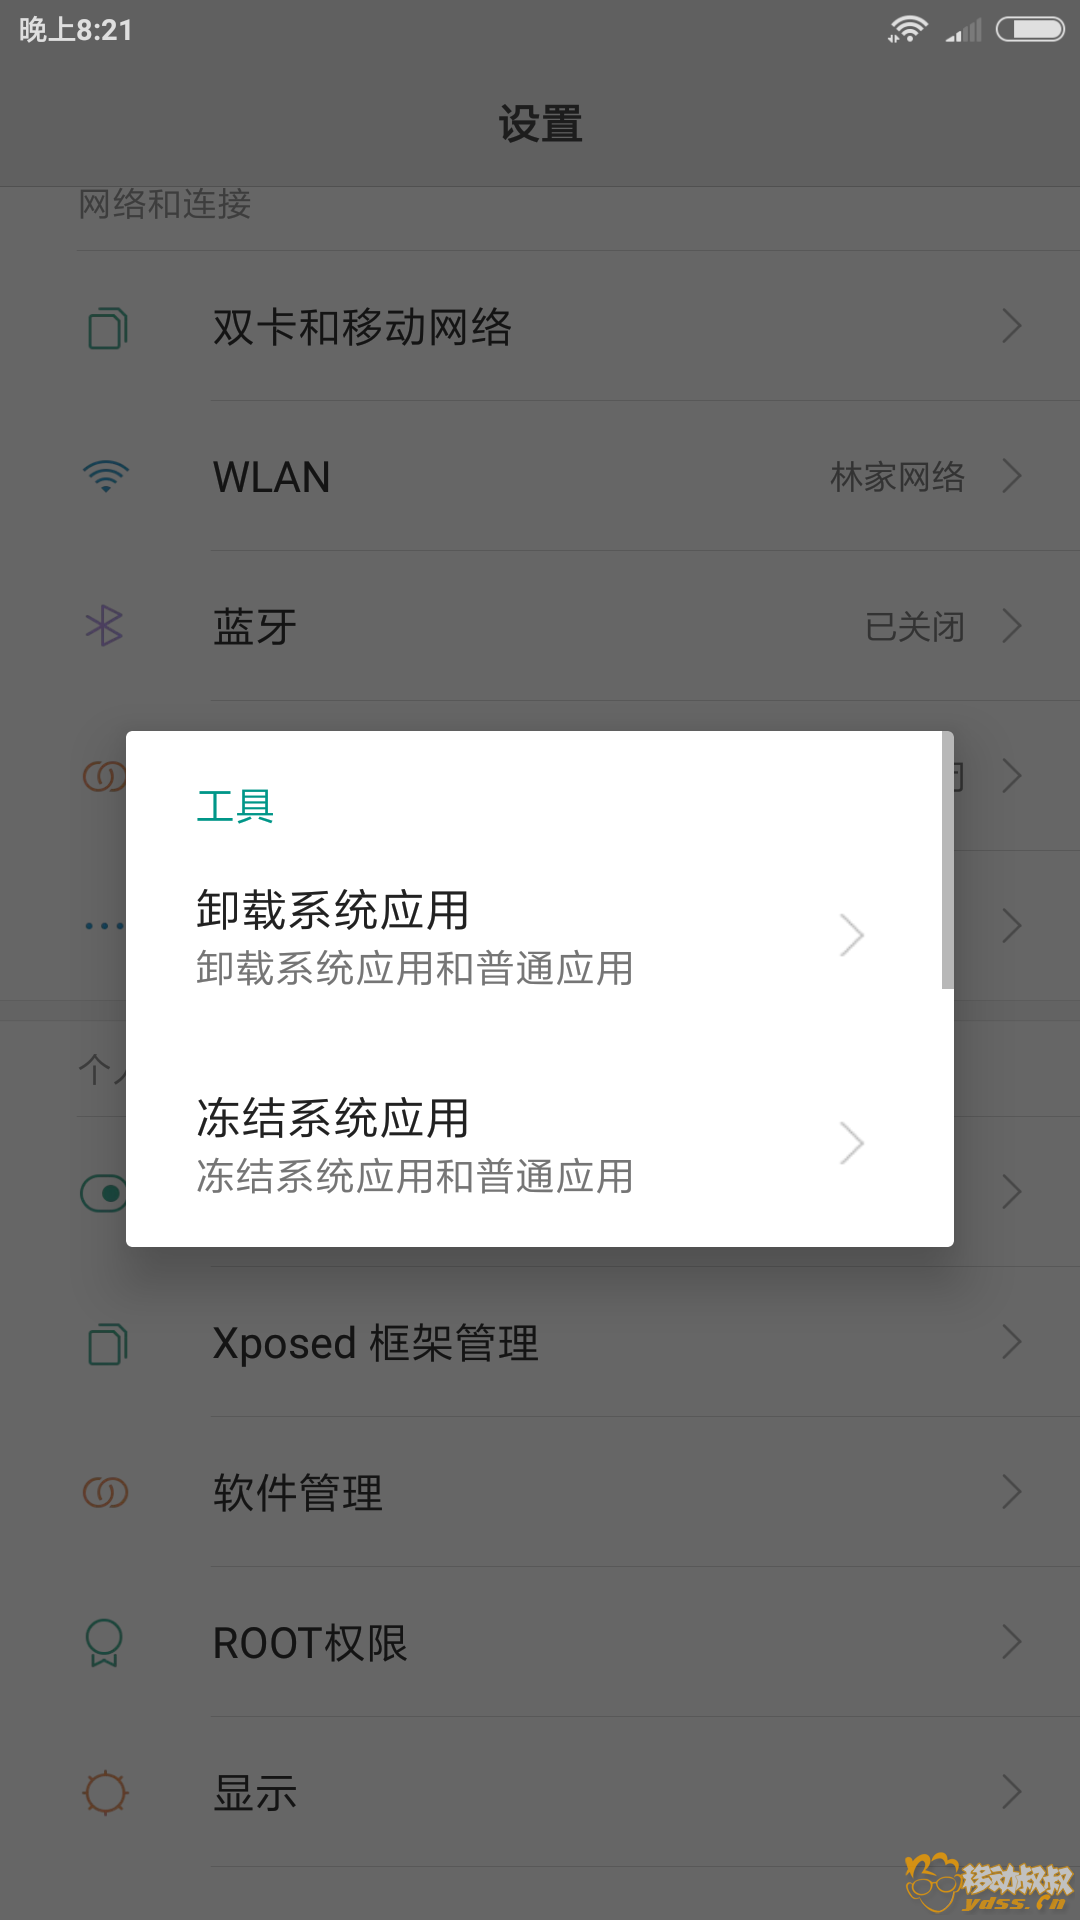 Screenshot_2018-02-28-20-21-04-413_com.zhanhong.tools.png